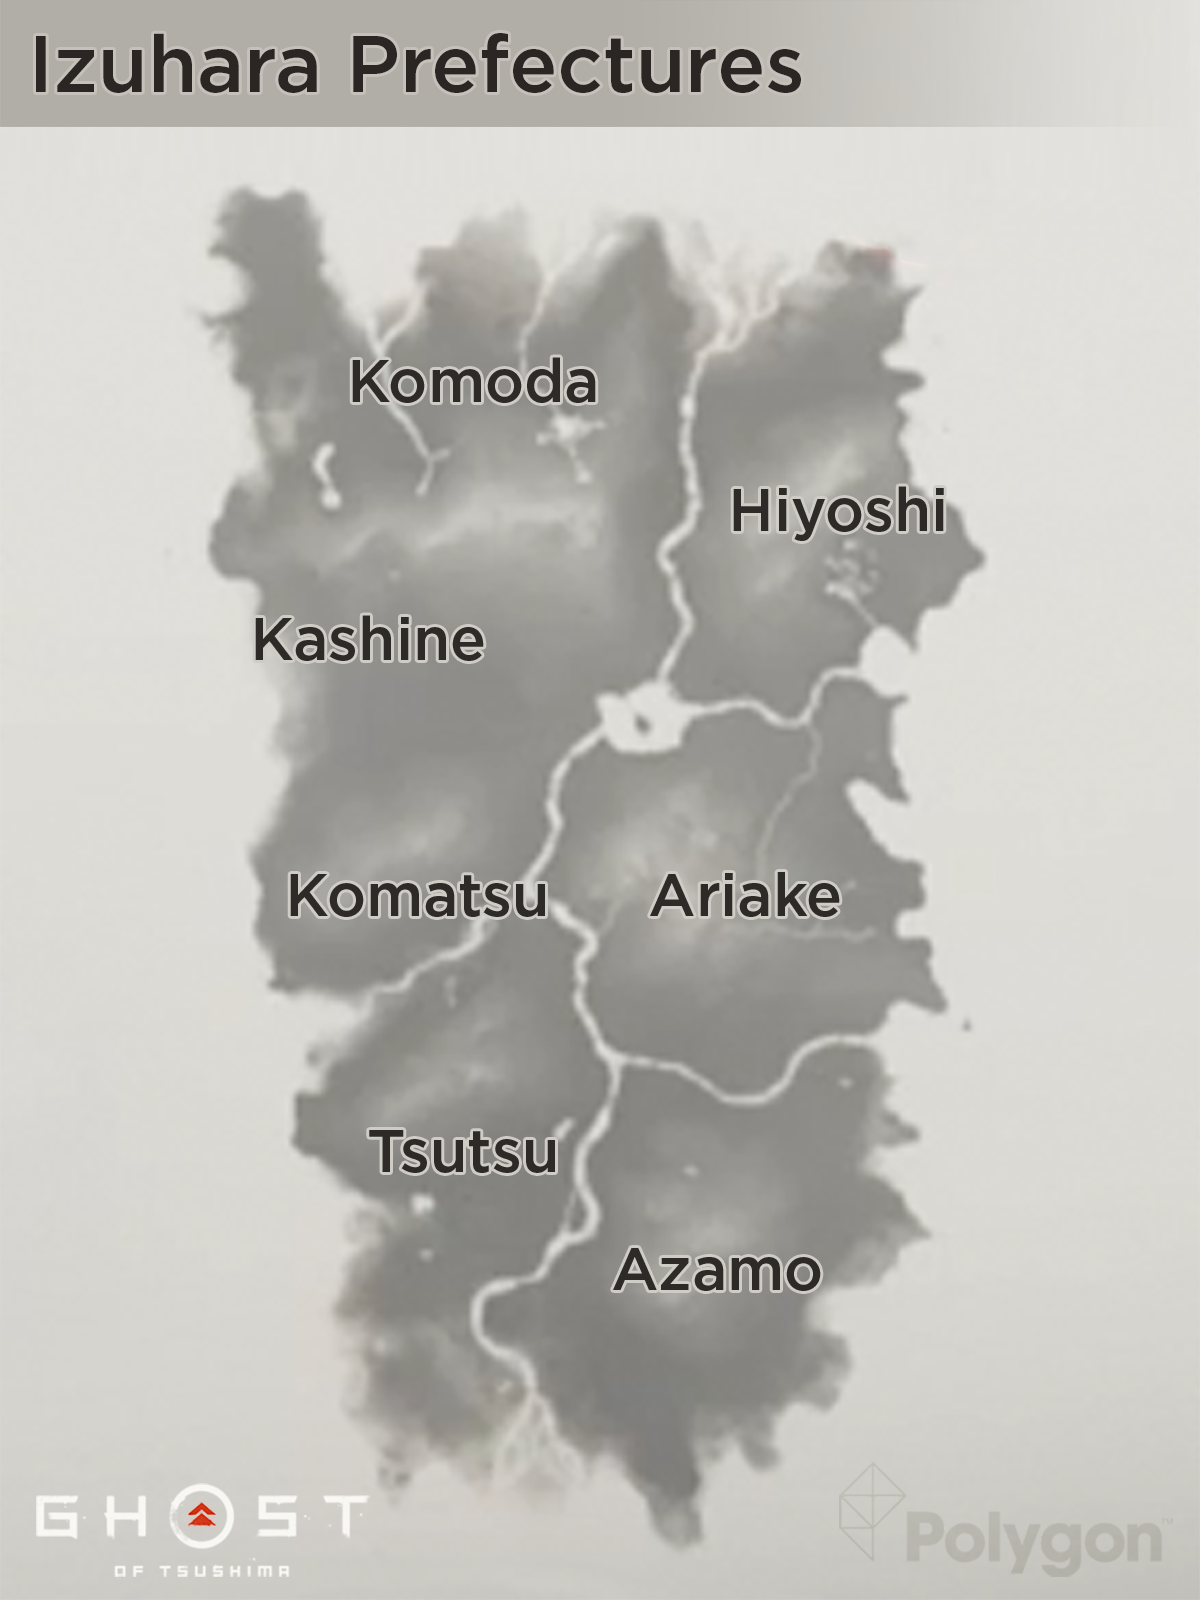 Ghost of Tsushima Izuhara prefectures map